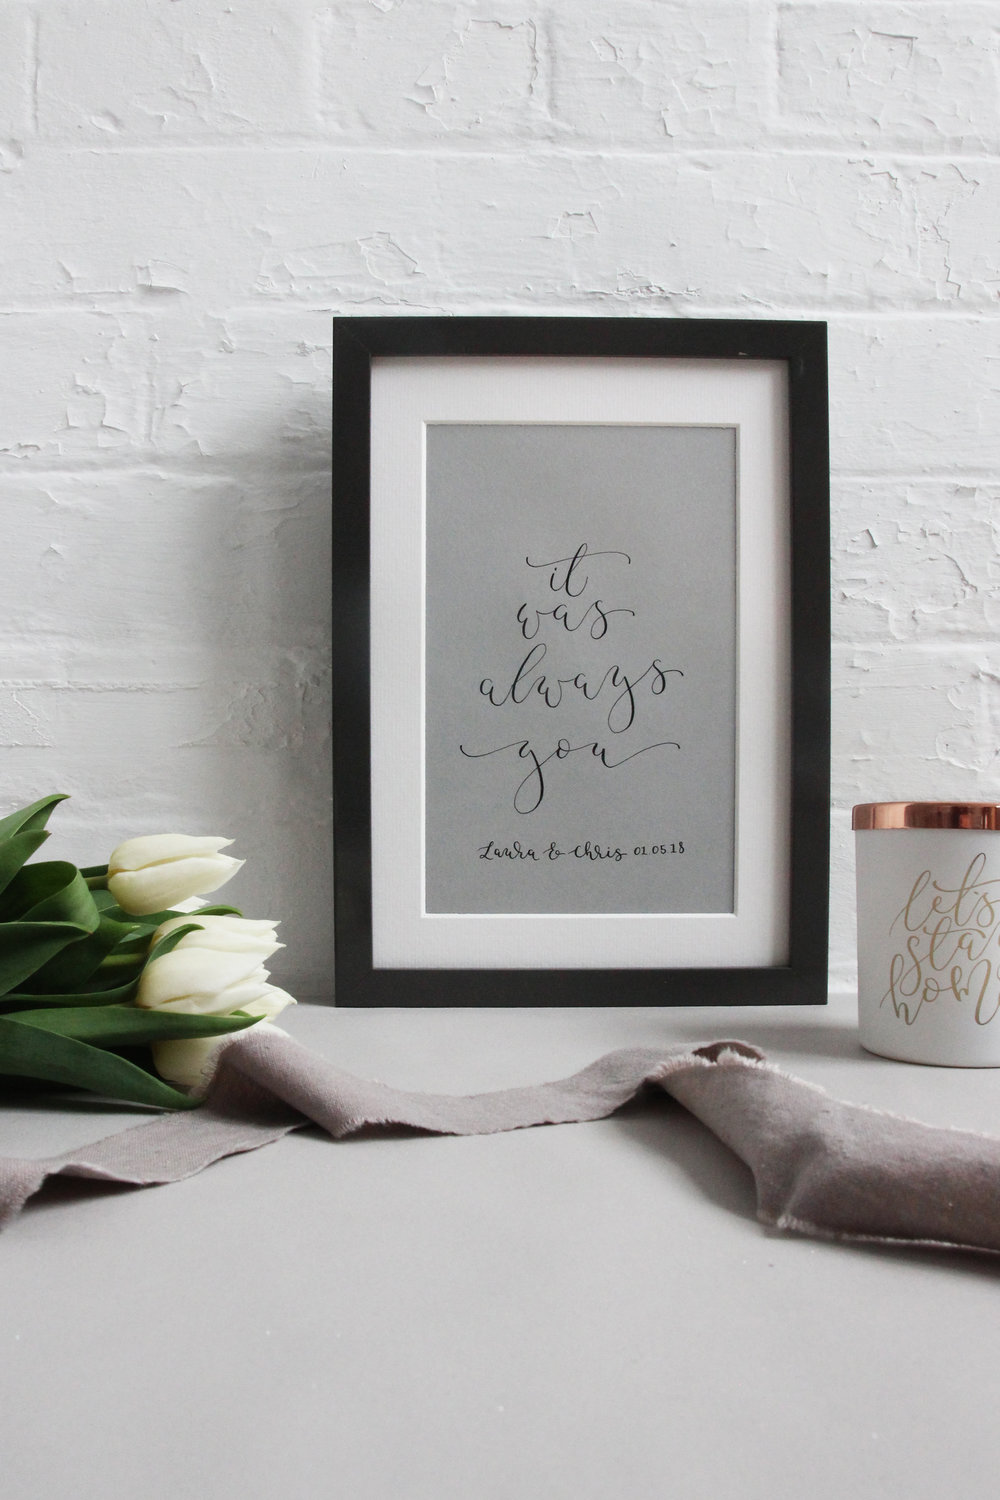 Home and Interiors accessories, mugs, prints, calligraphy and candles